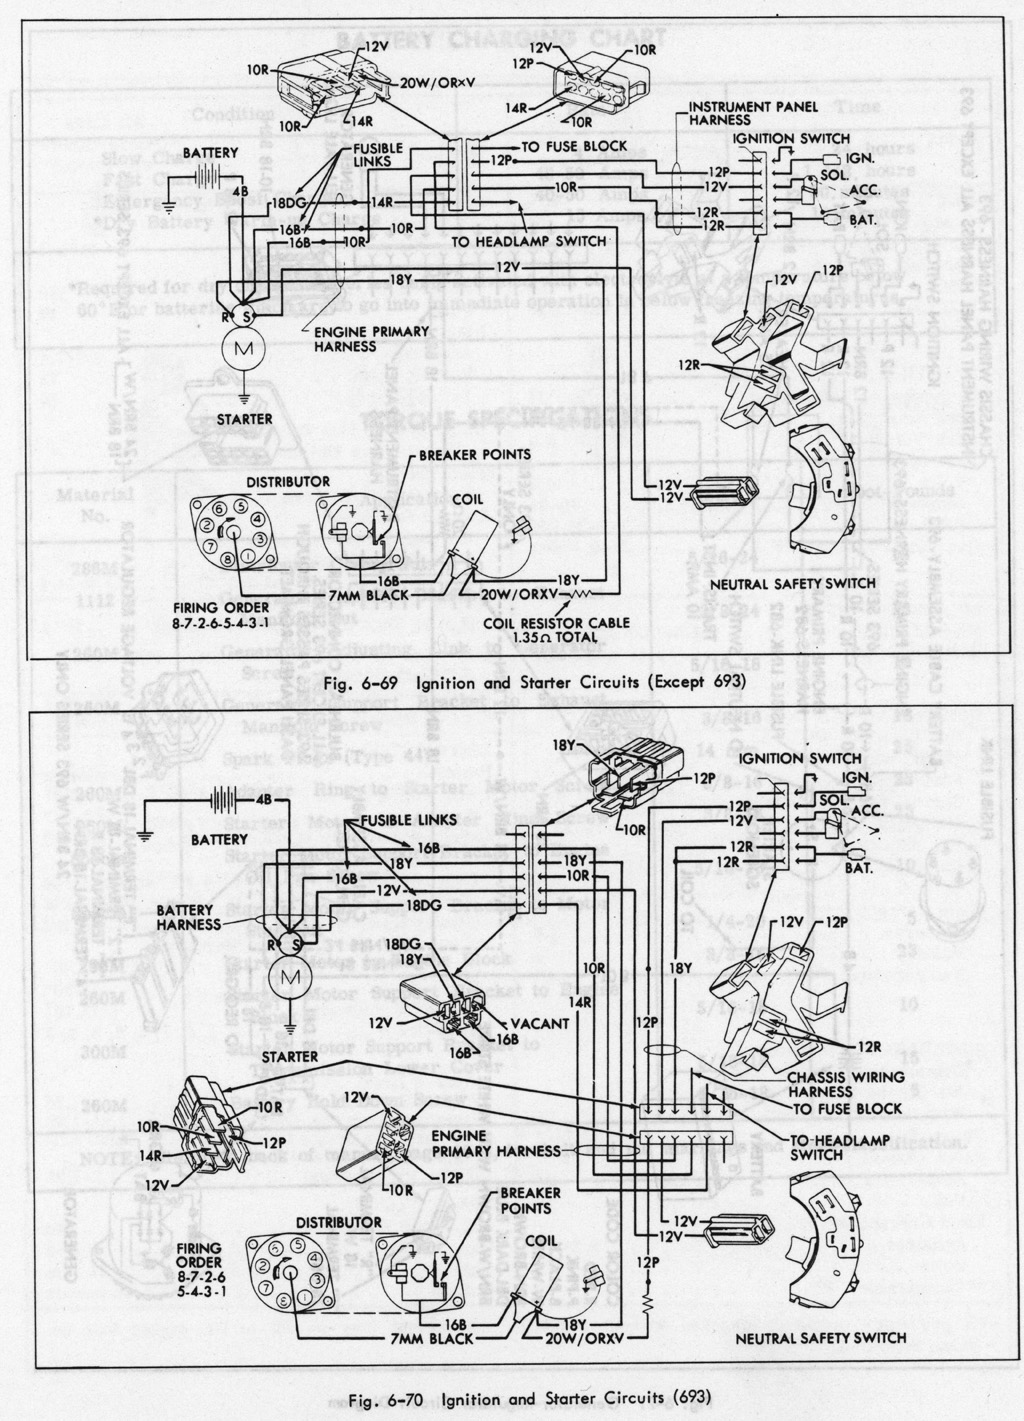 ignition_starter diagram 1969 firebird wiring diagram & 1969 firebird wiring diagram rear 1967 firebird wiring diagram at readyjetset.co